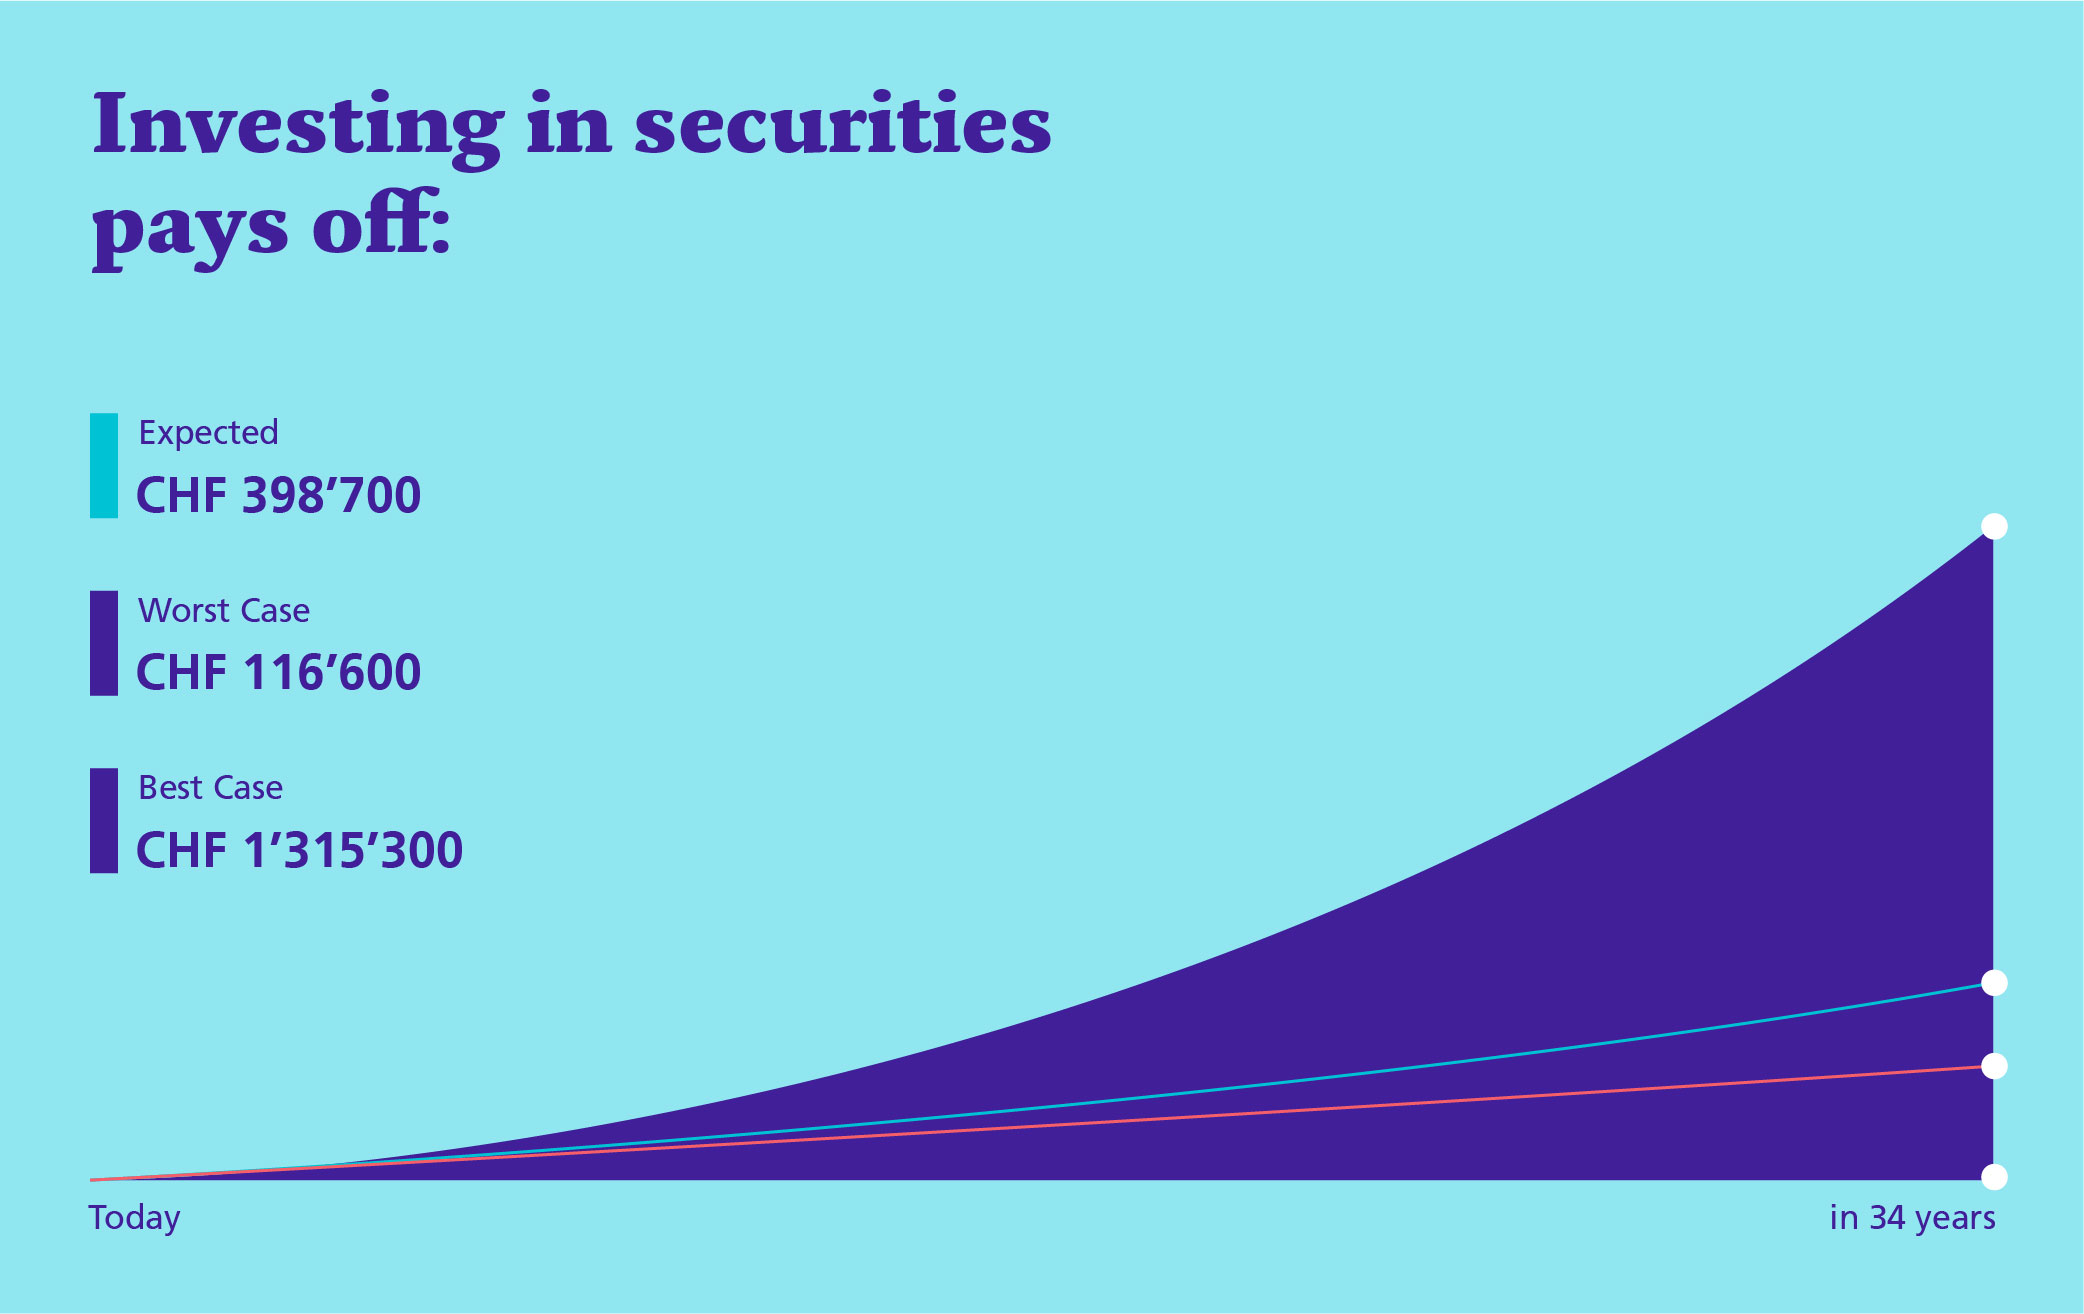 Investing in securities pays off: